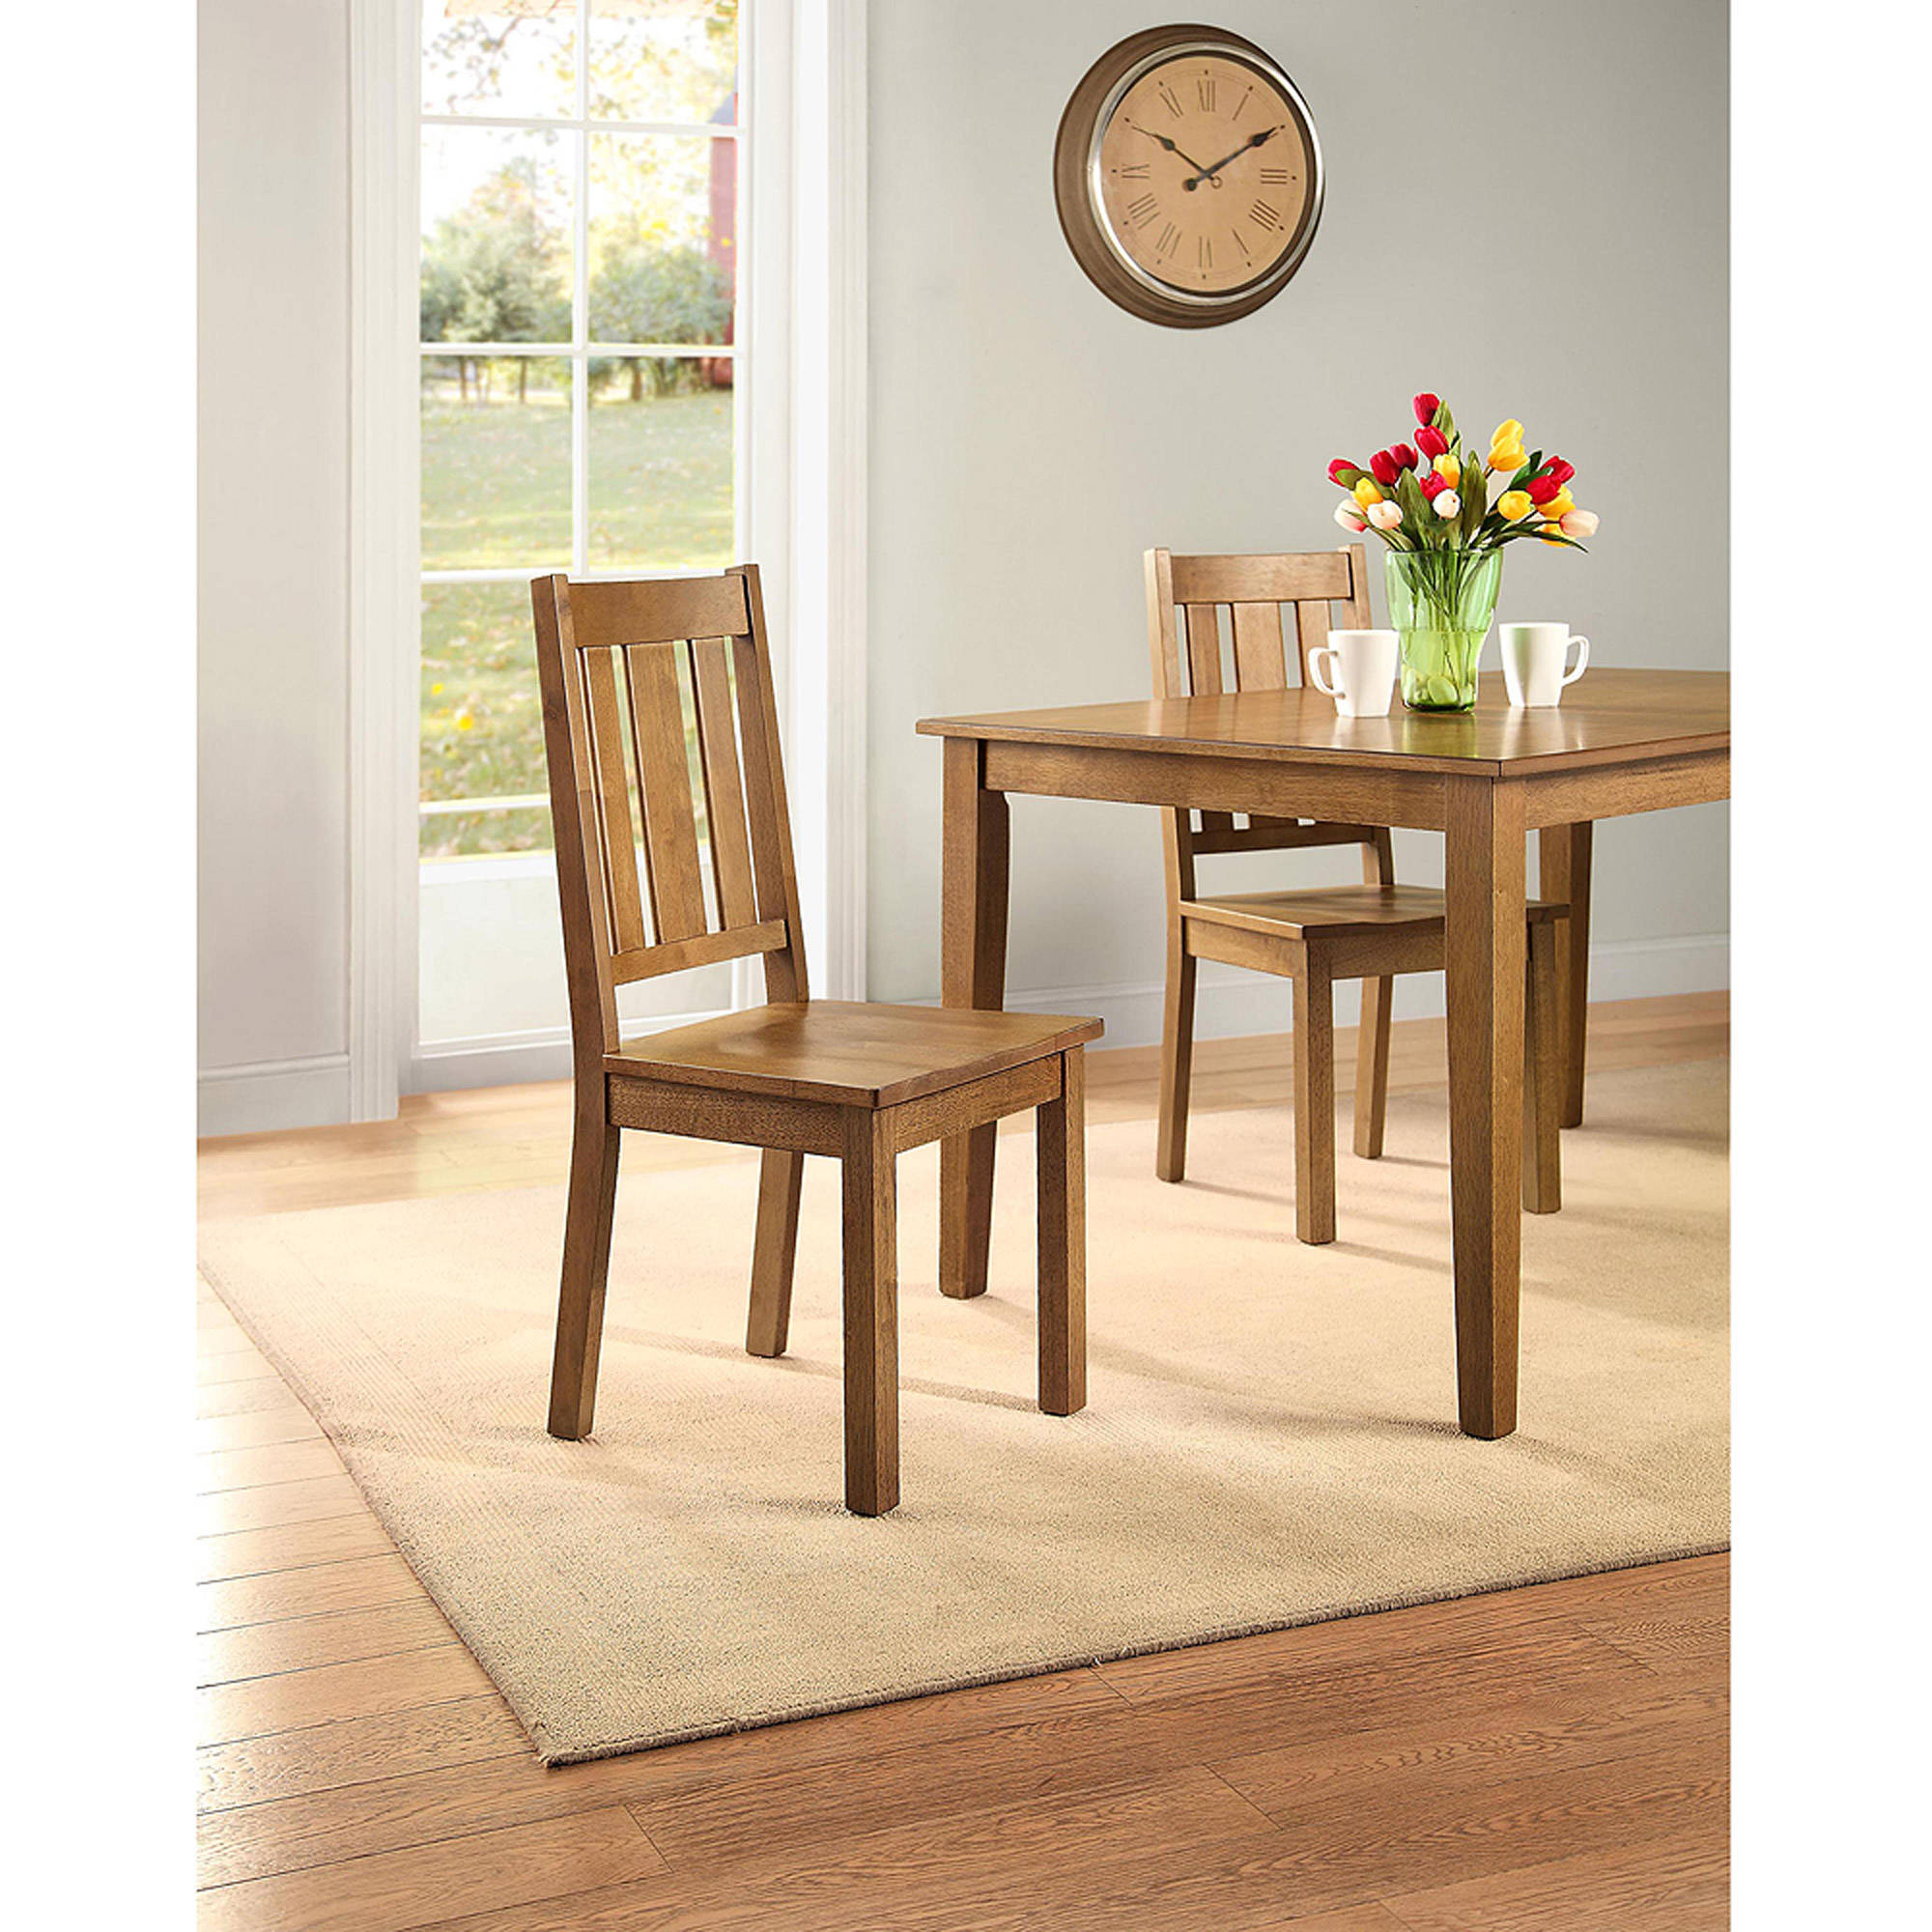 Better Homes and Gardens Bankston Dining Chair, Set of 2, Honey by